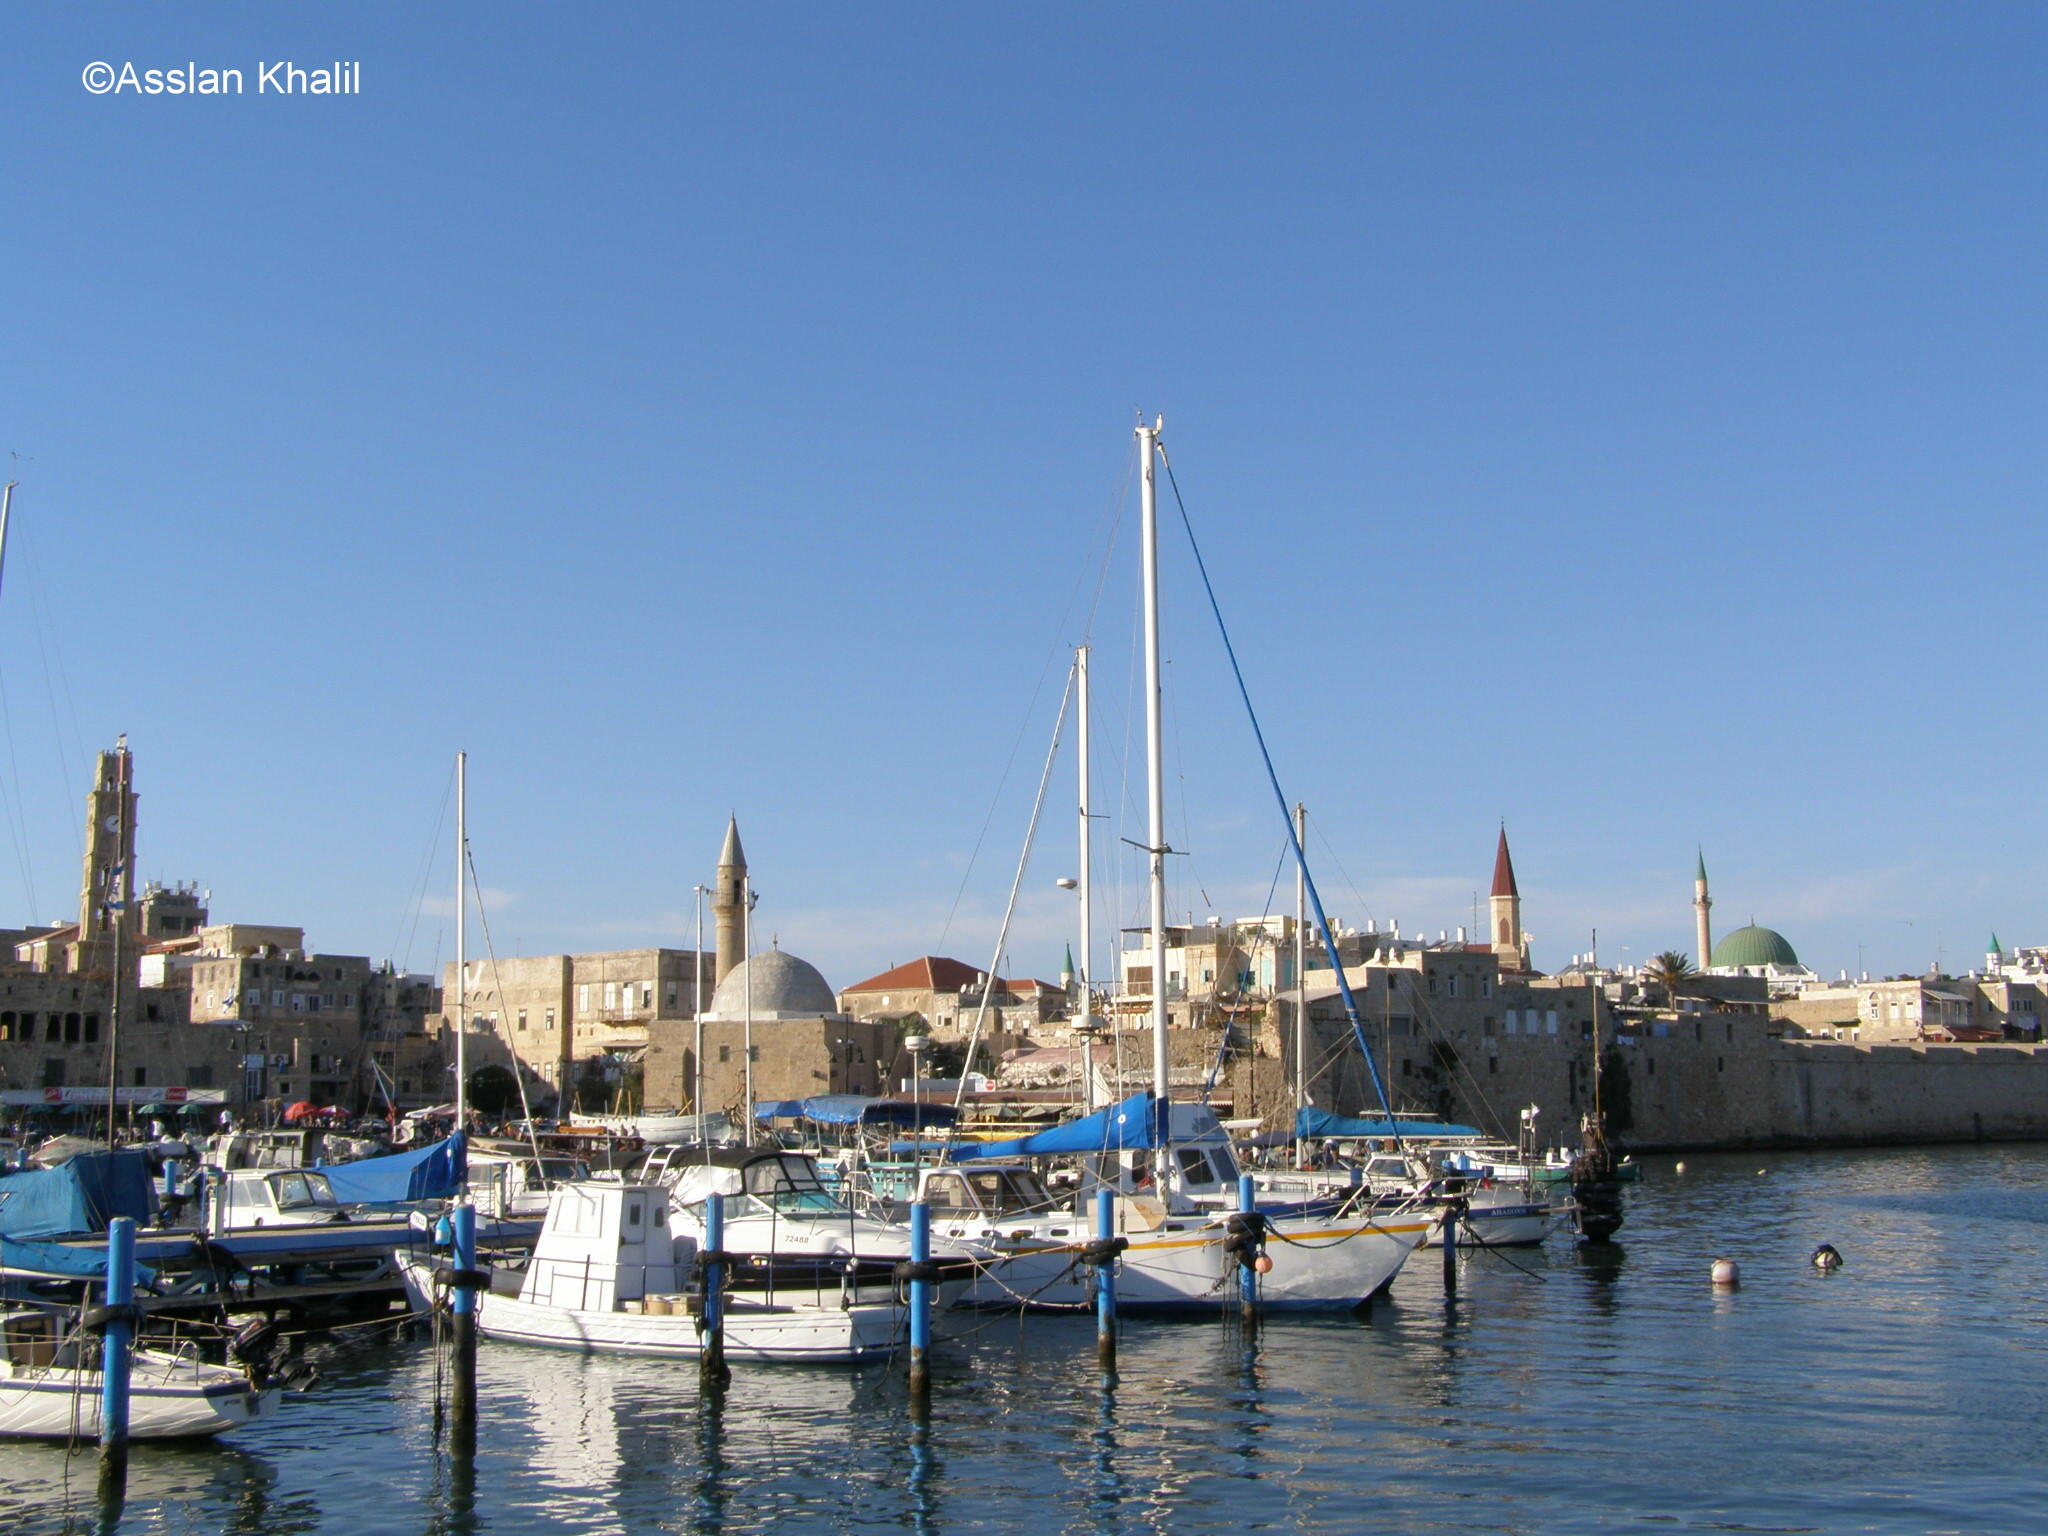 Acre - عكا : The Mosques and Clock Tower and Church from the Port View